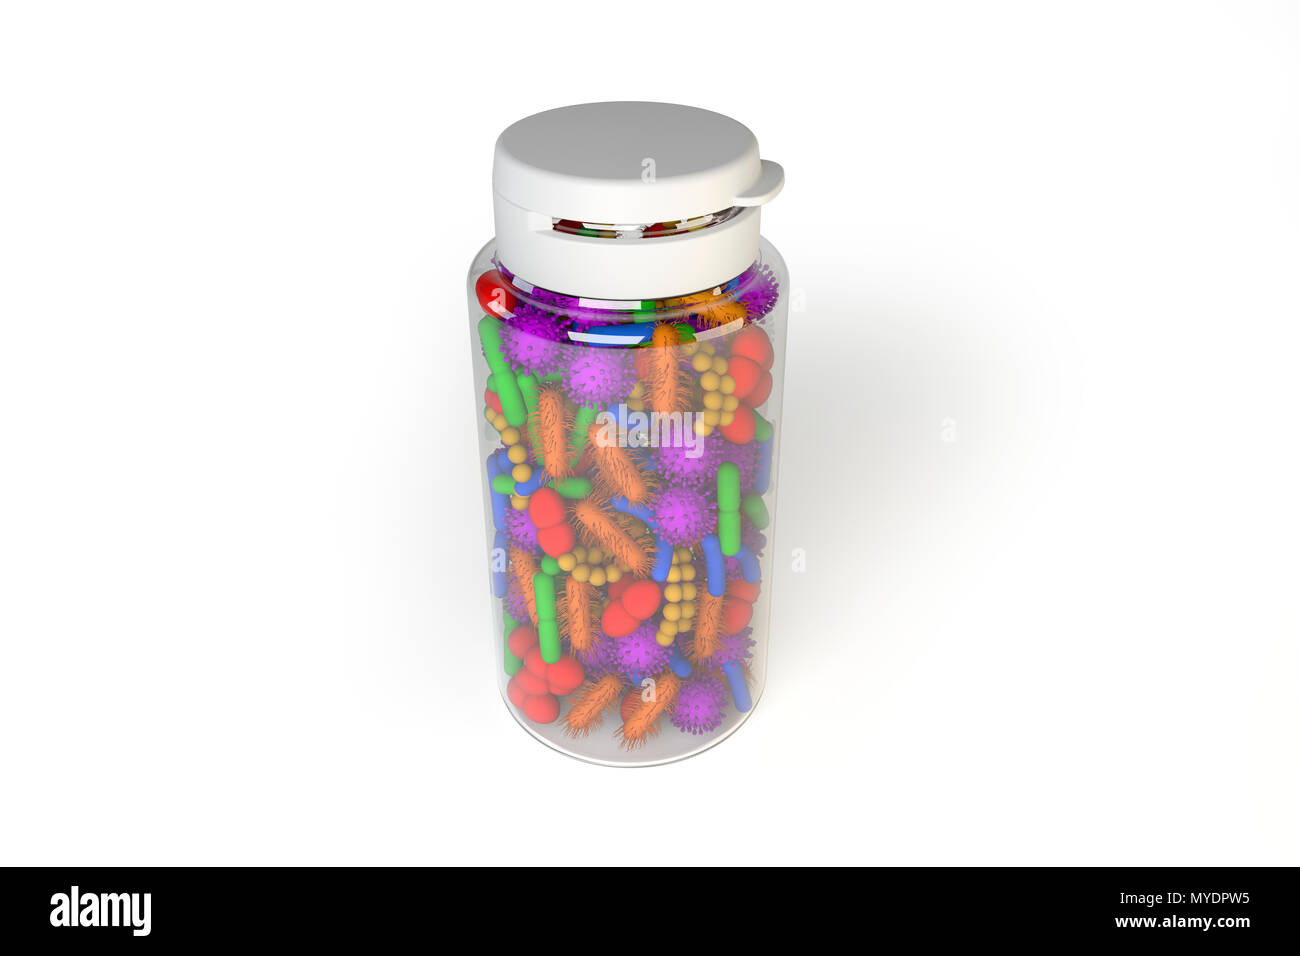 Conceptual Illustration Of Human Microbiome Microbes Inside A Pill